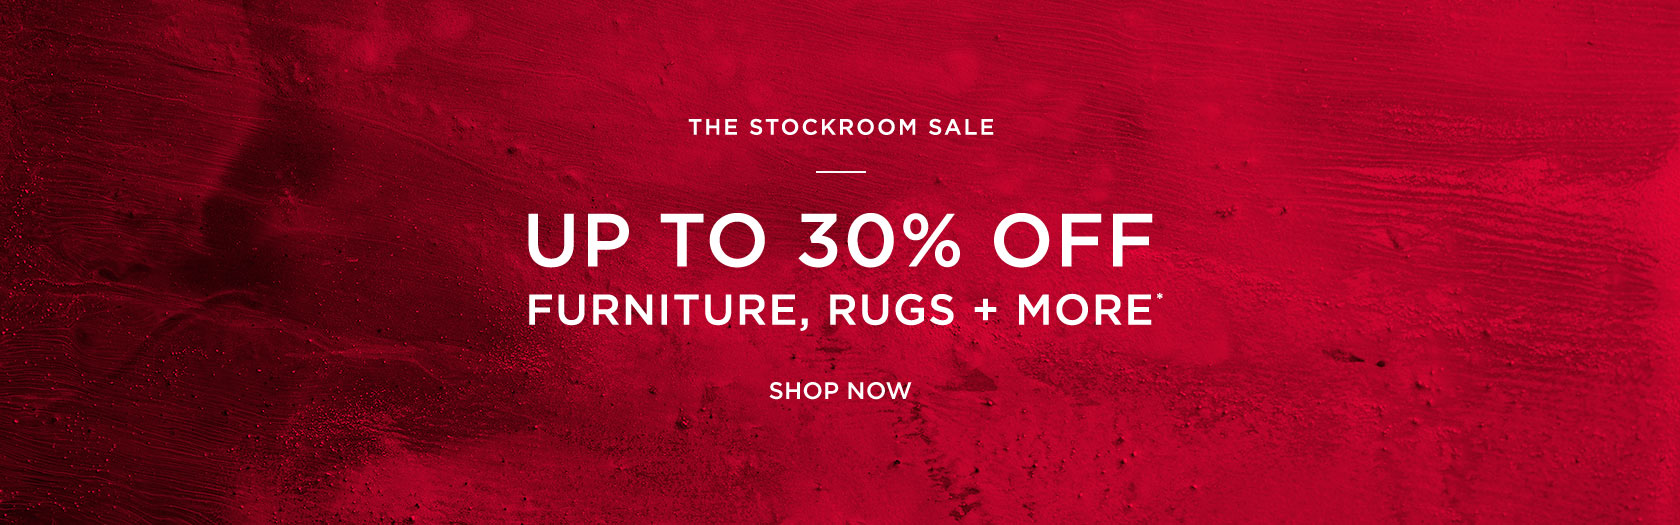 The Stockroom Sale - Up To 30 Percent Off Furniture, Rugs + More